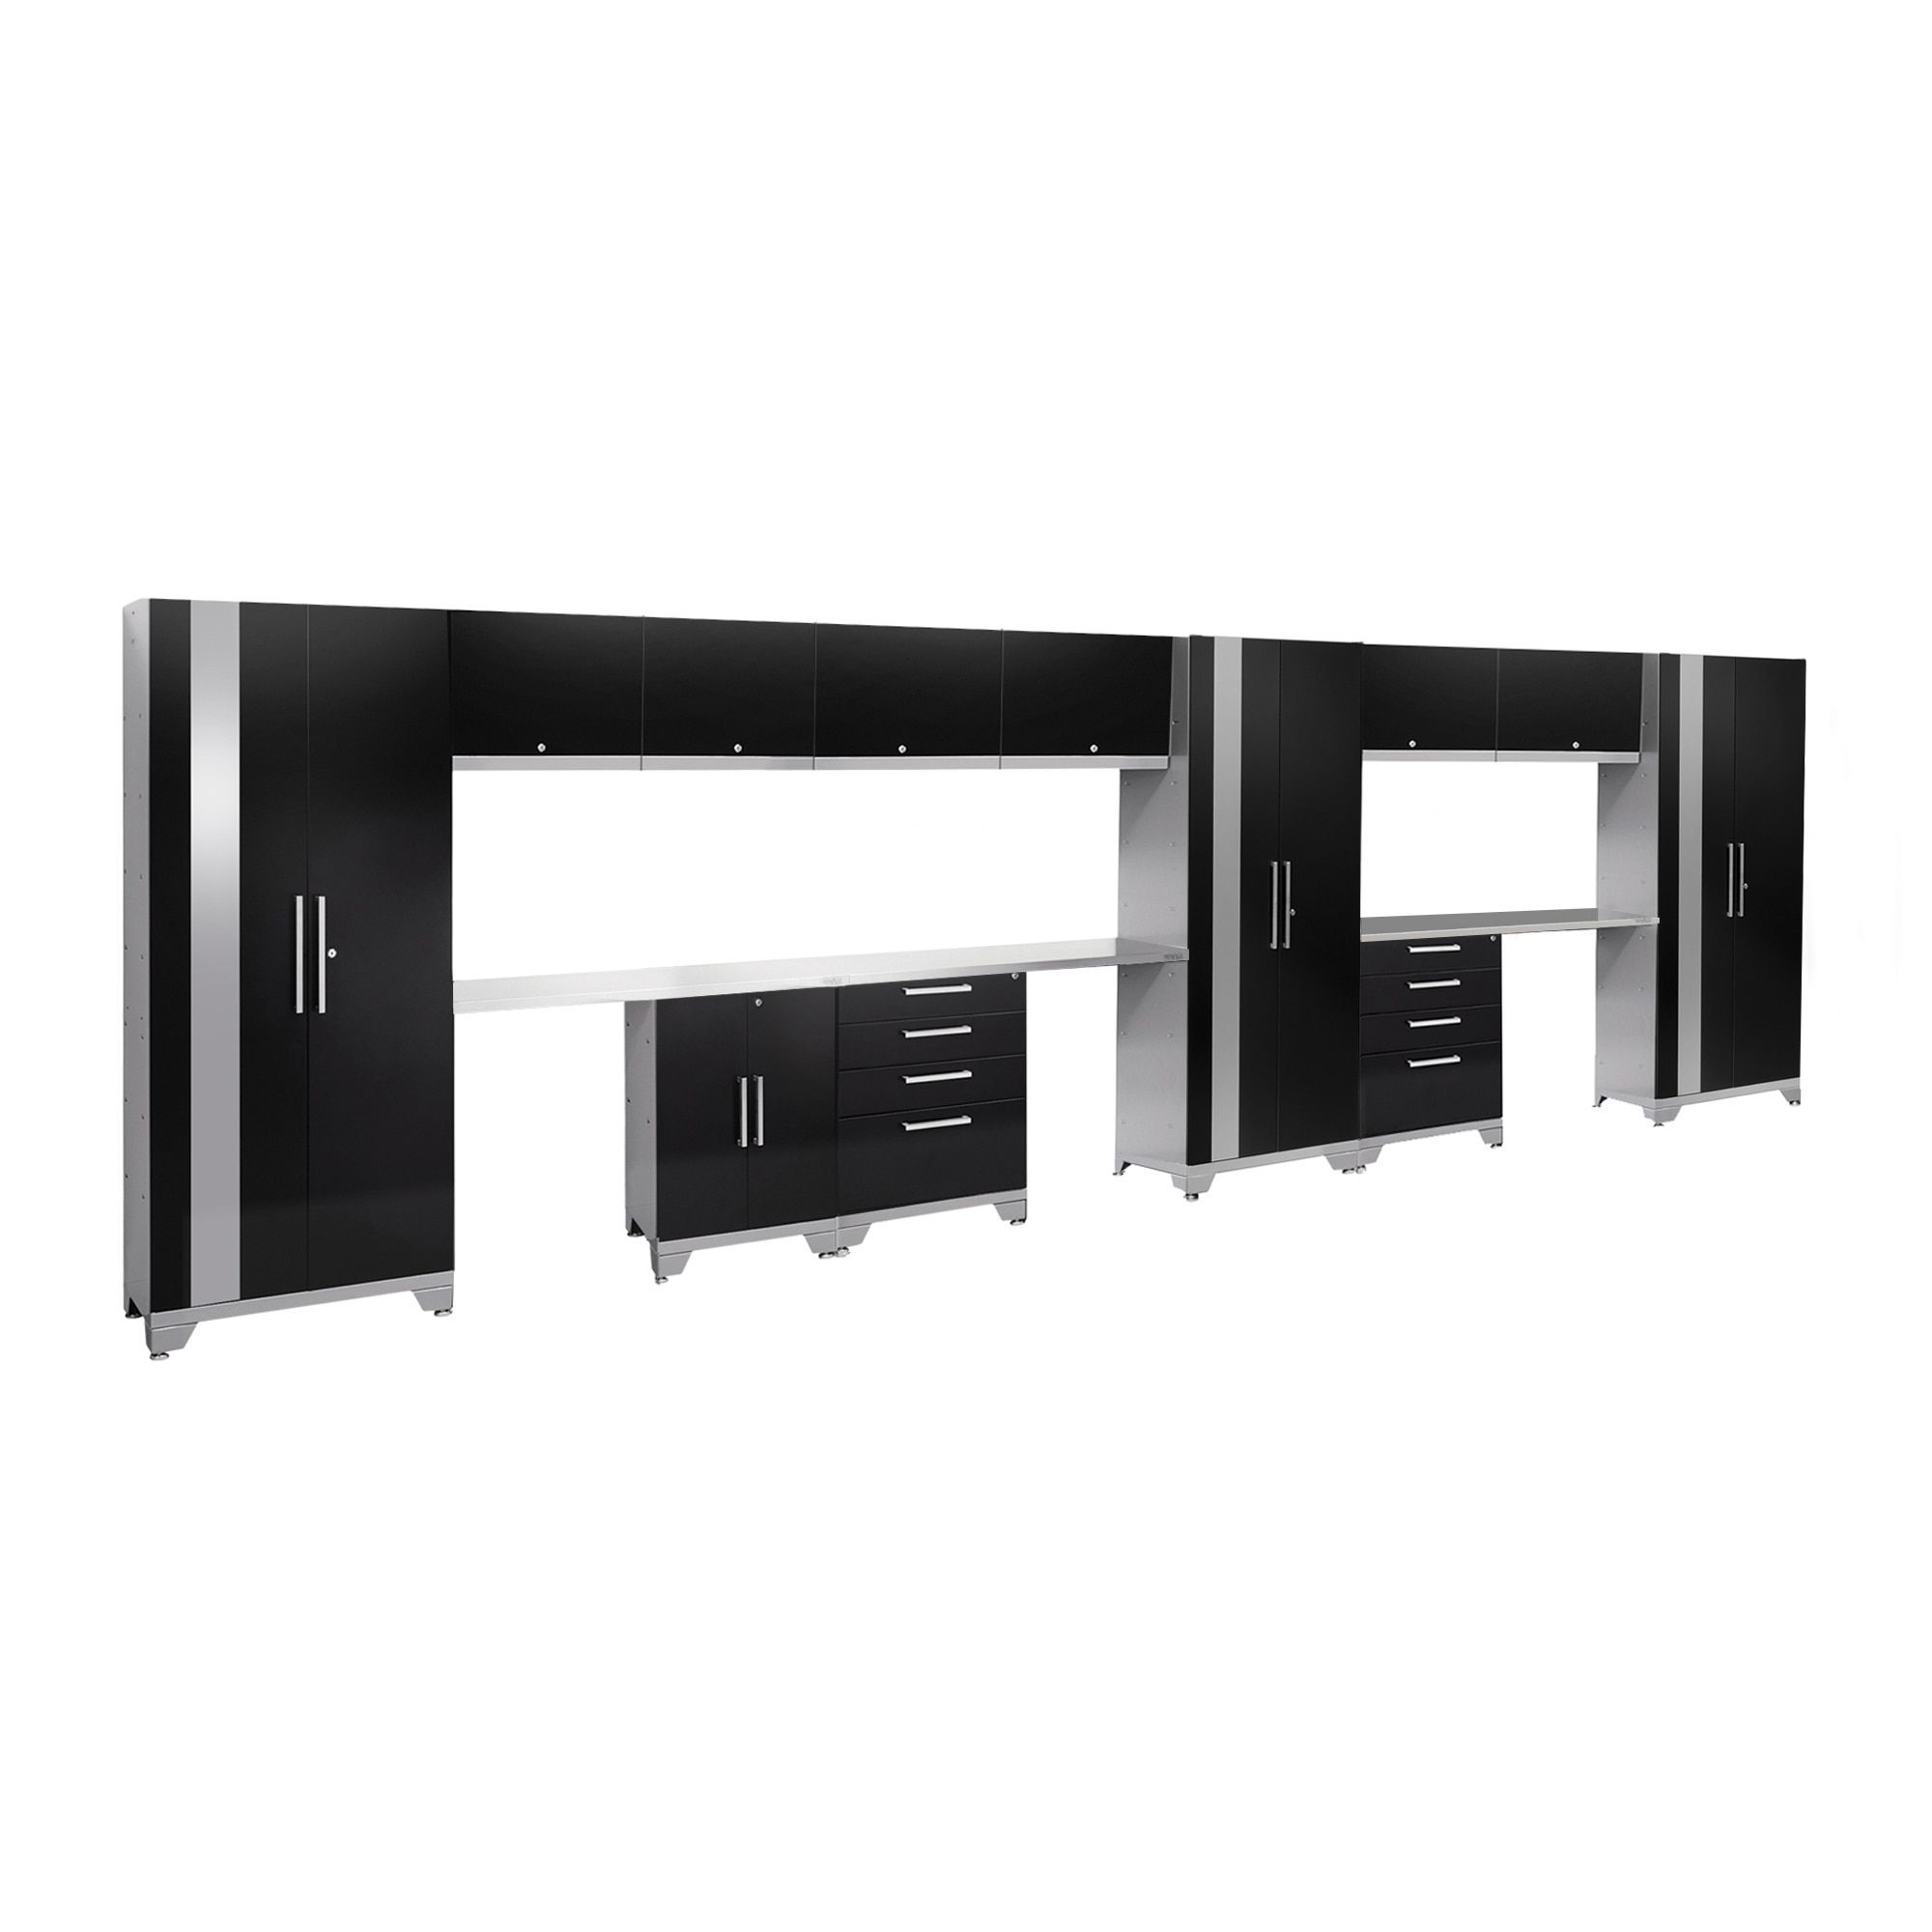 Beautiful New Age Products Cabinets